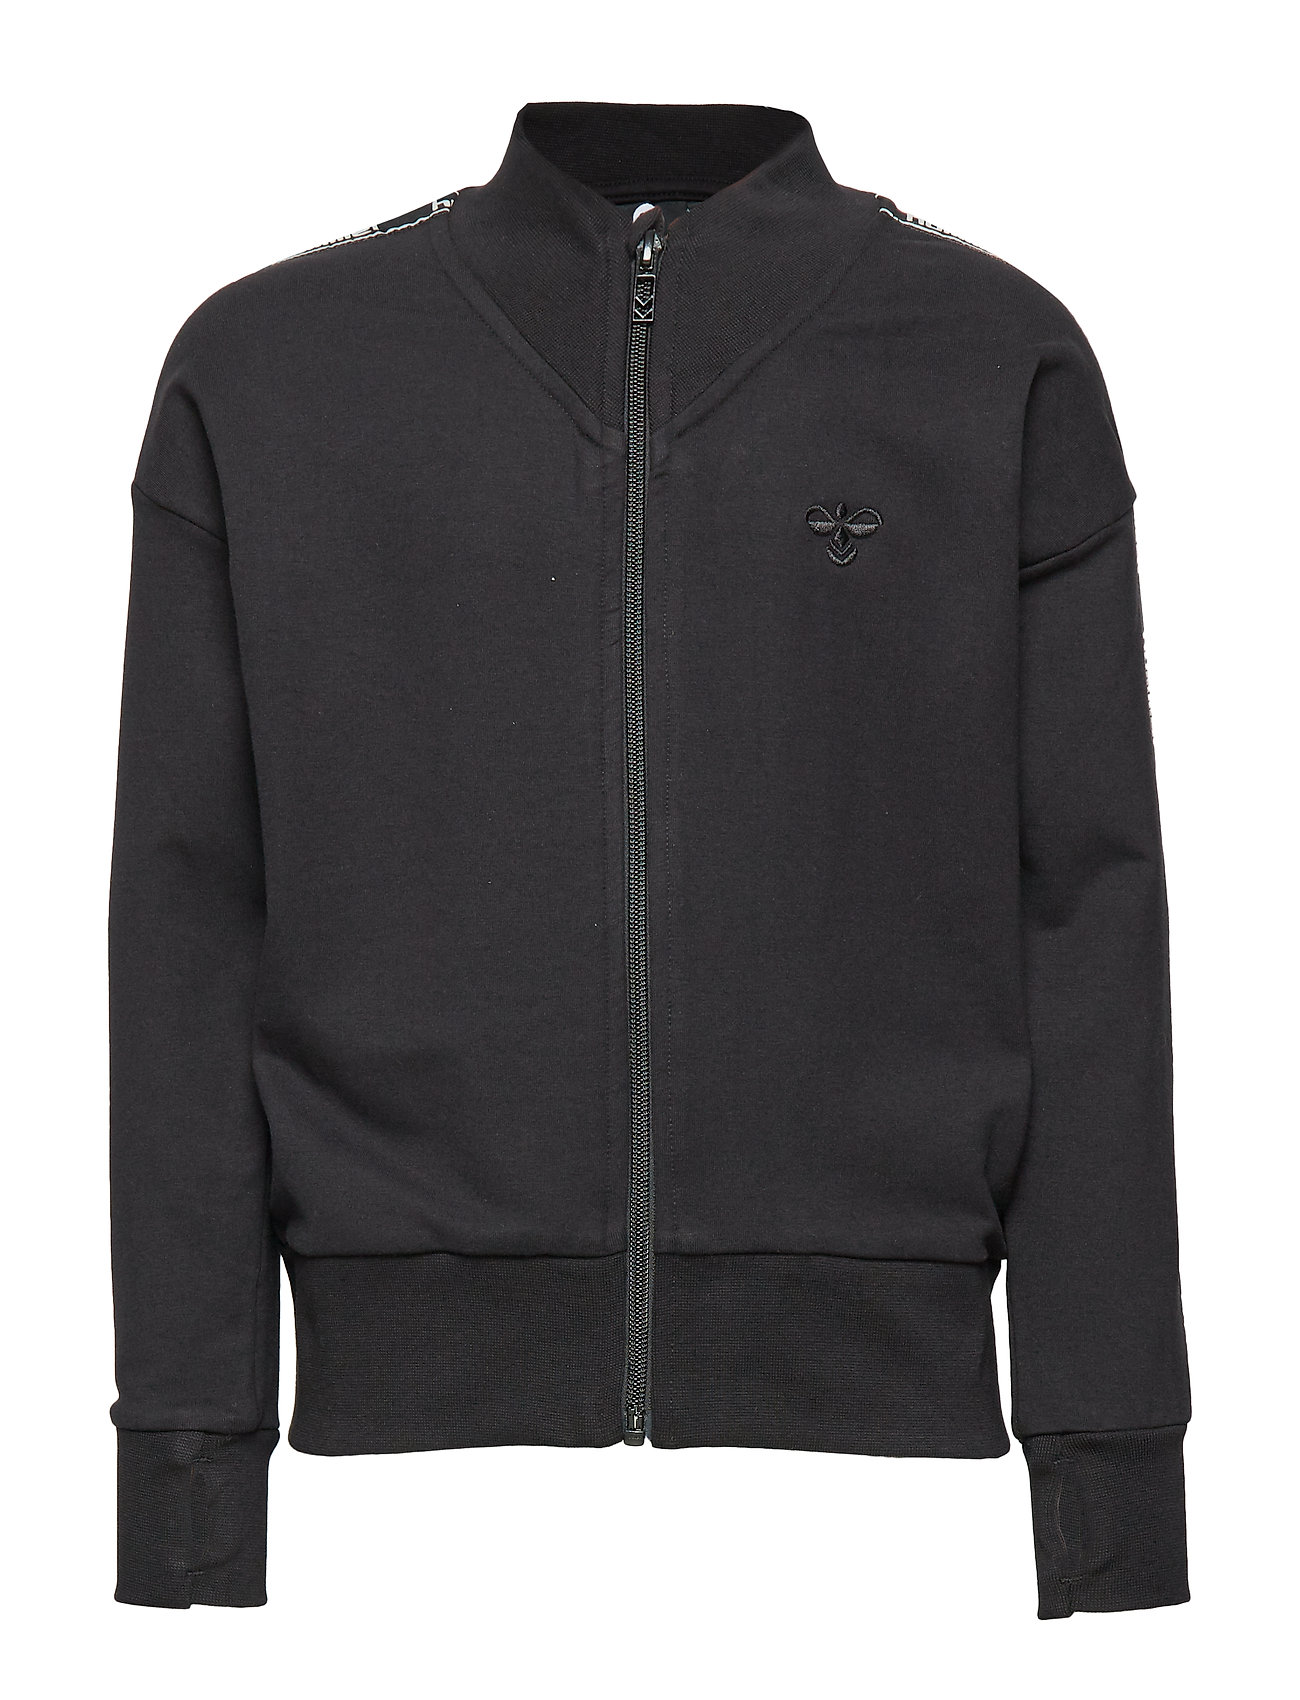 Hummel hmlGRO ZIP JACKET - BLACK